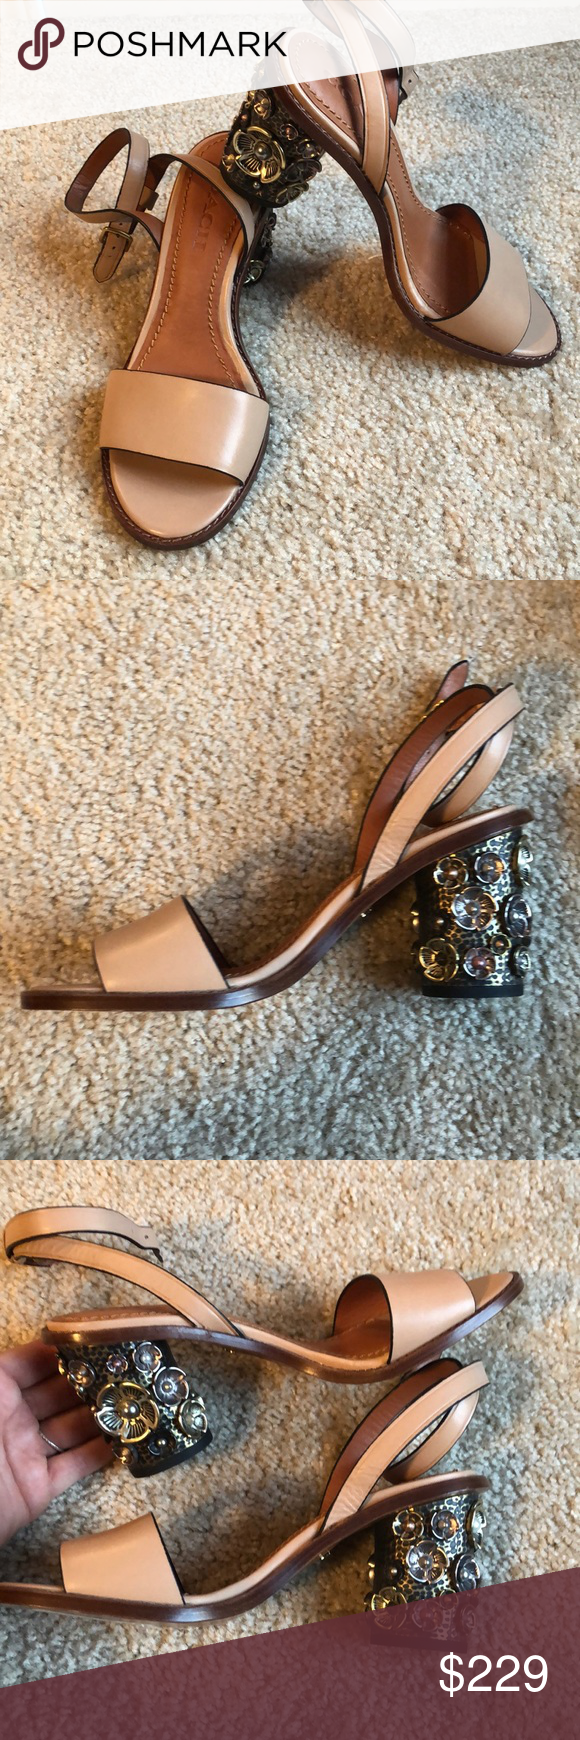 "b81cce9f4f94 Coach Tea Rose Mid Heel sandal-7 Brand new. No box. Coach tea rose mid heel  sandal. In nude. Women s size 7 Leather Buckle closure 3"" heel Smoke Free  home ..."